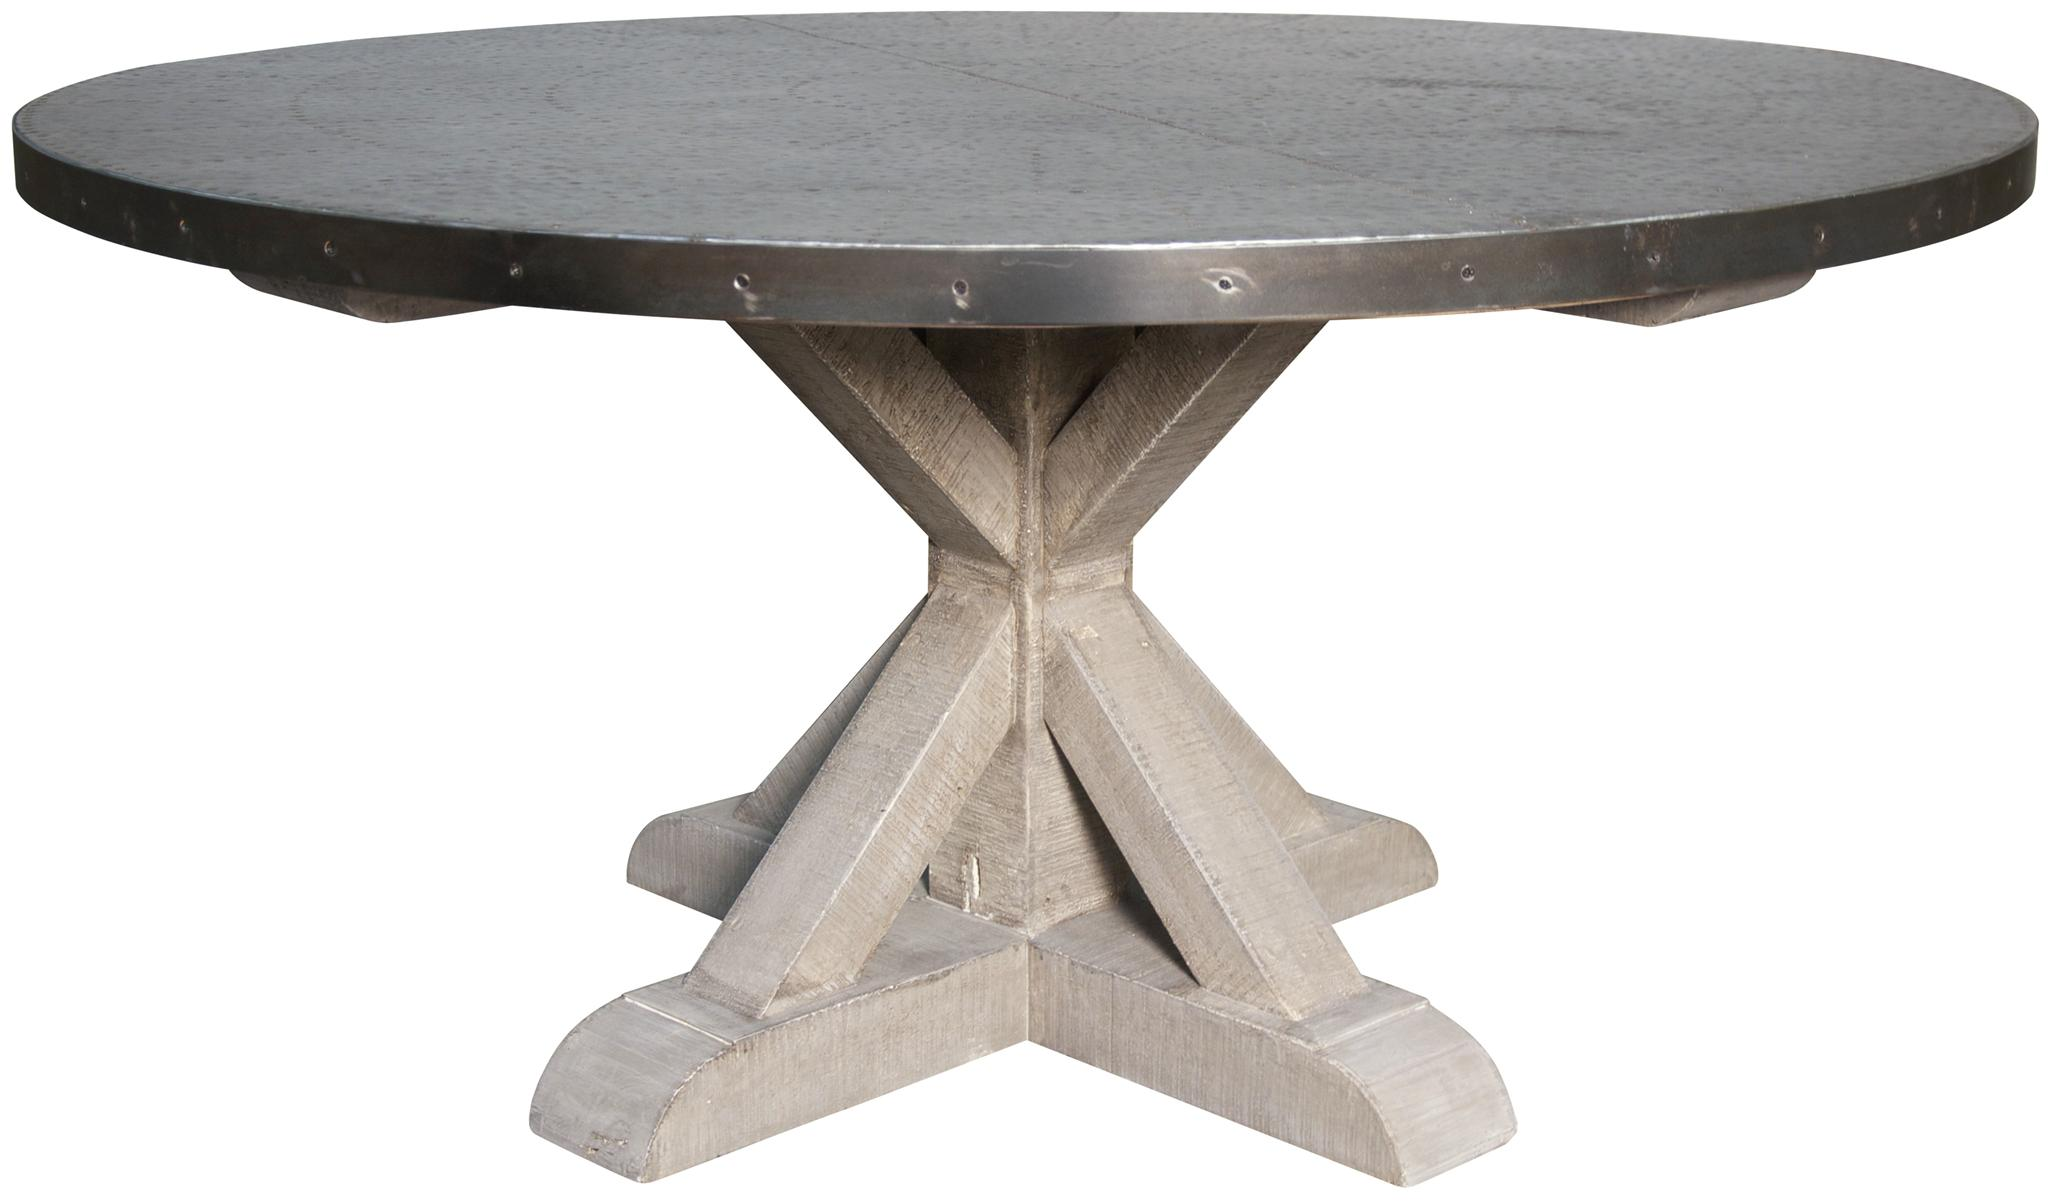 metal top dining table uk. view larger image metal top dining table uk d